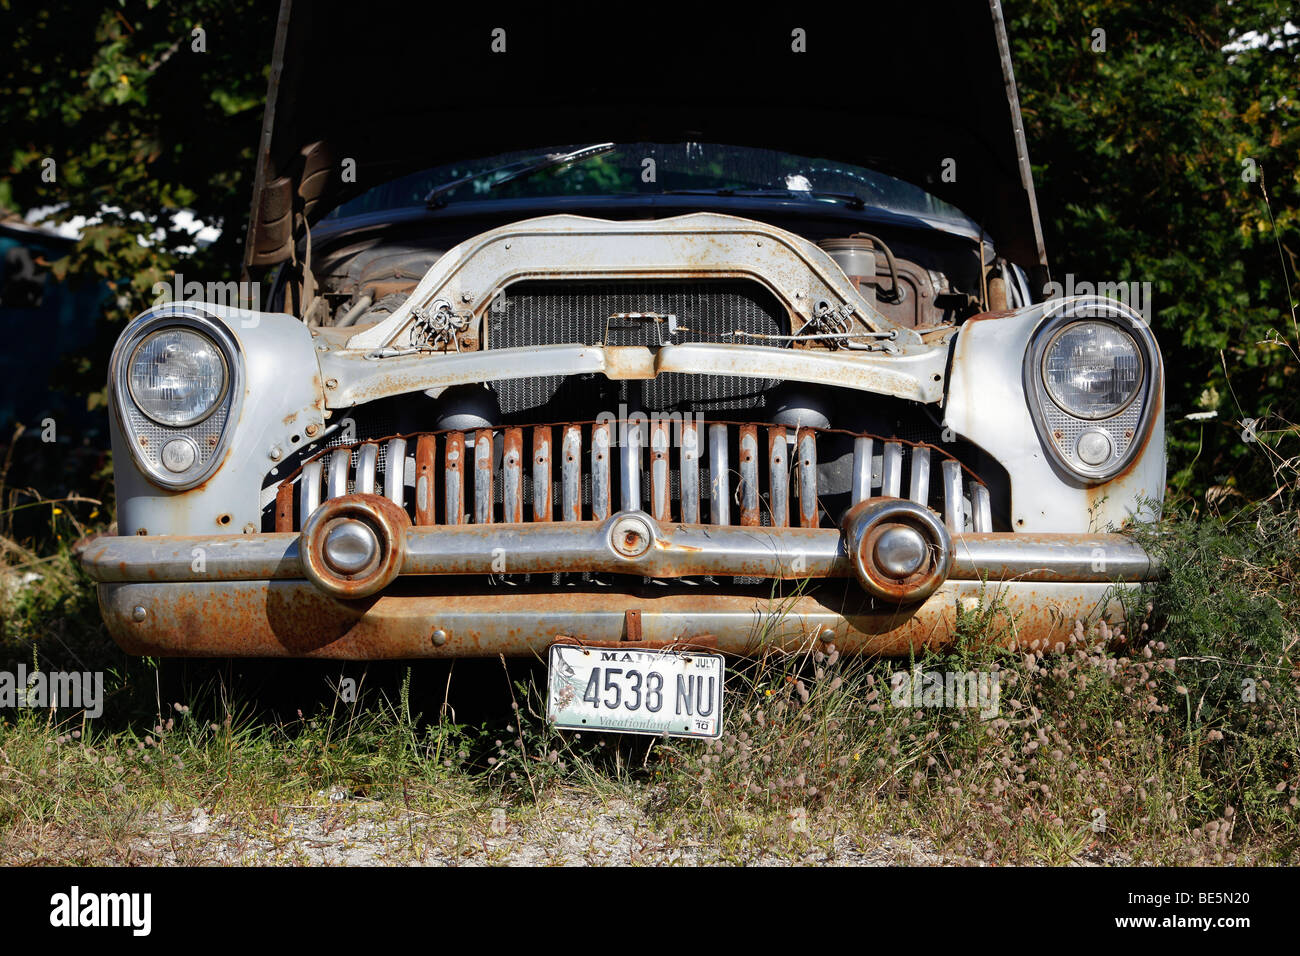 Fine Old Cars For Sale In Maine Contemporary - Classic Cars Ideas ...